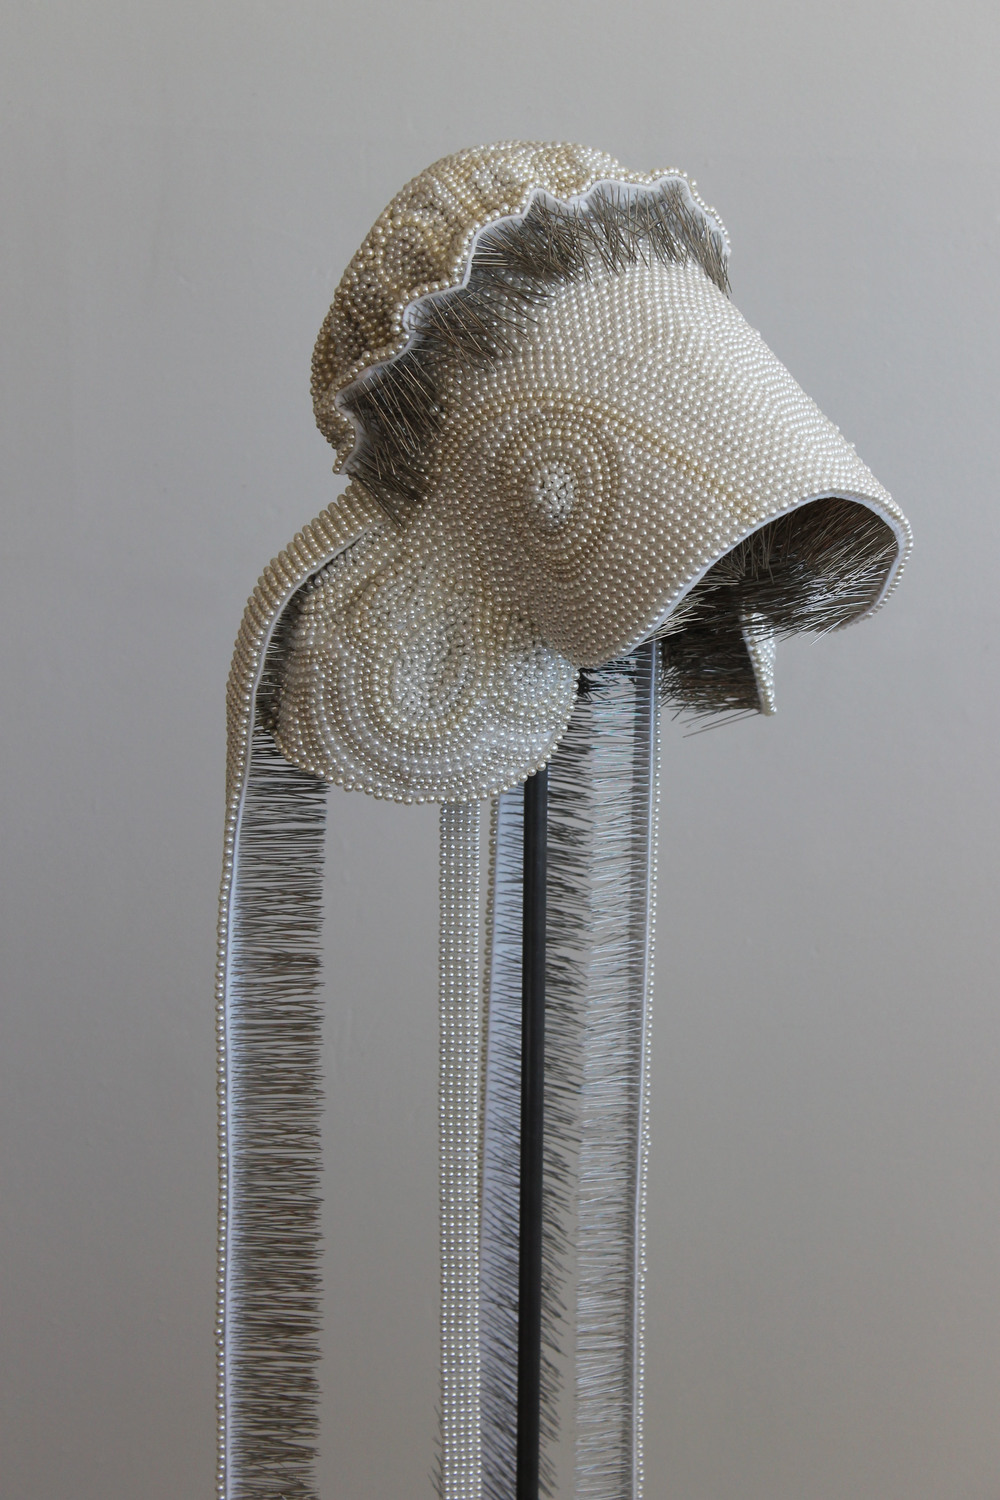 "Seer Bonnet XVIII (Ruth)  31,863 pearl corsage pins, fabric, steel, wood, 65"" x 12"" x 15"", 2011"